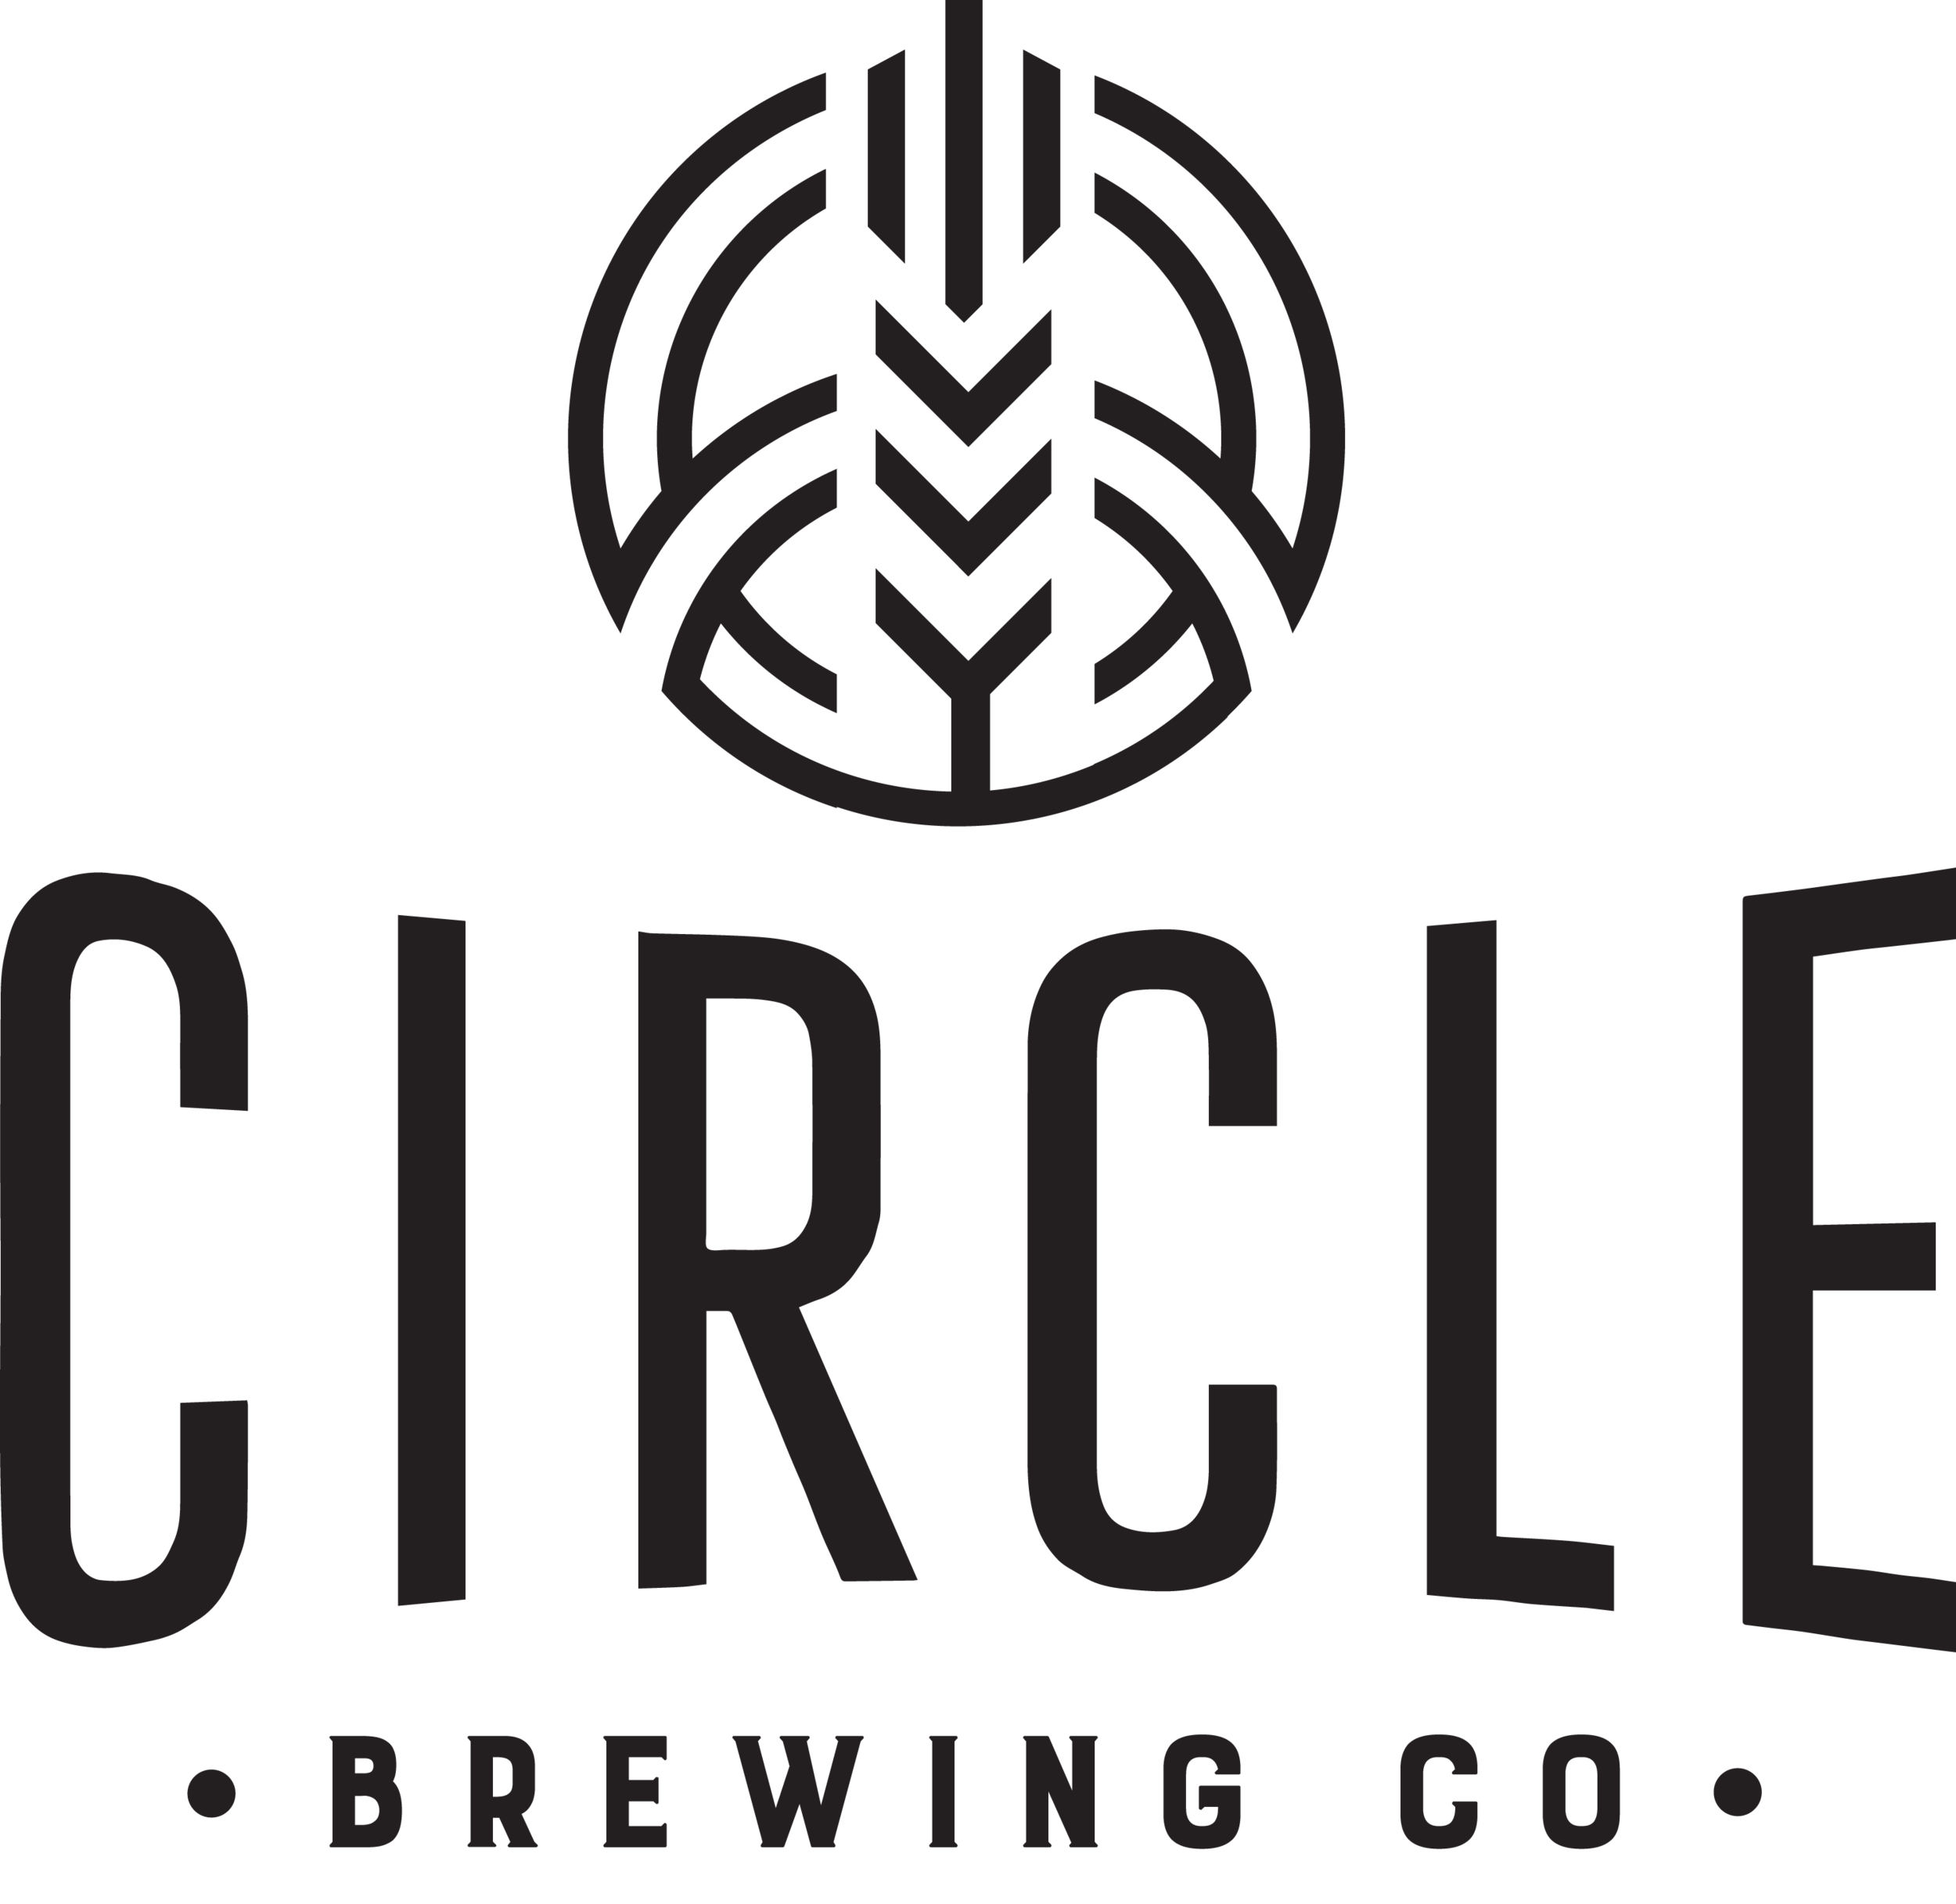 Circle_Logo-IconName-black.png